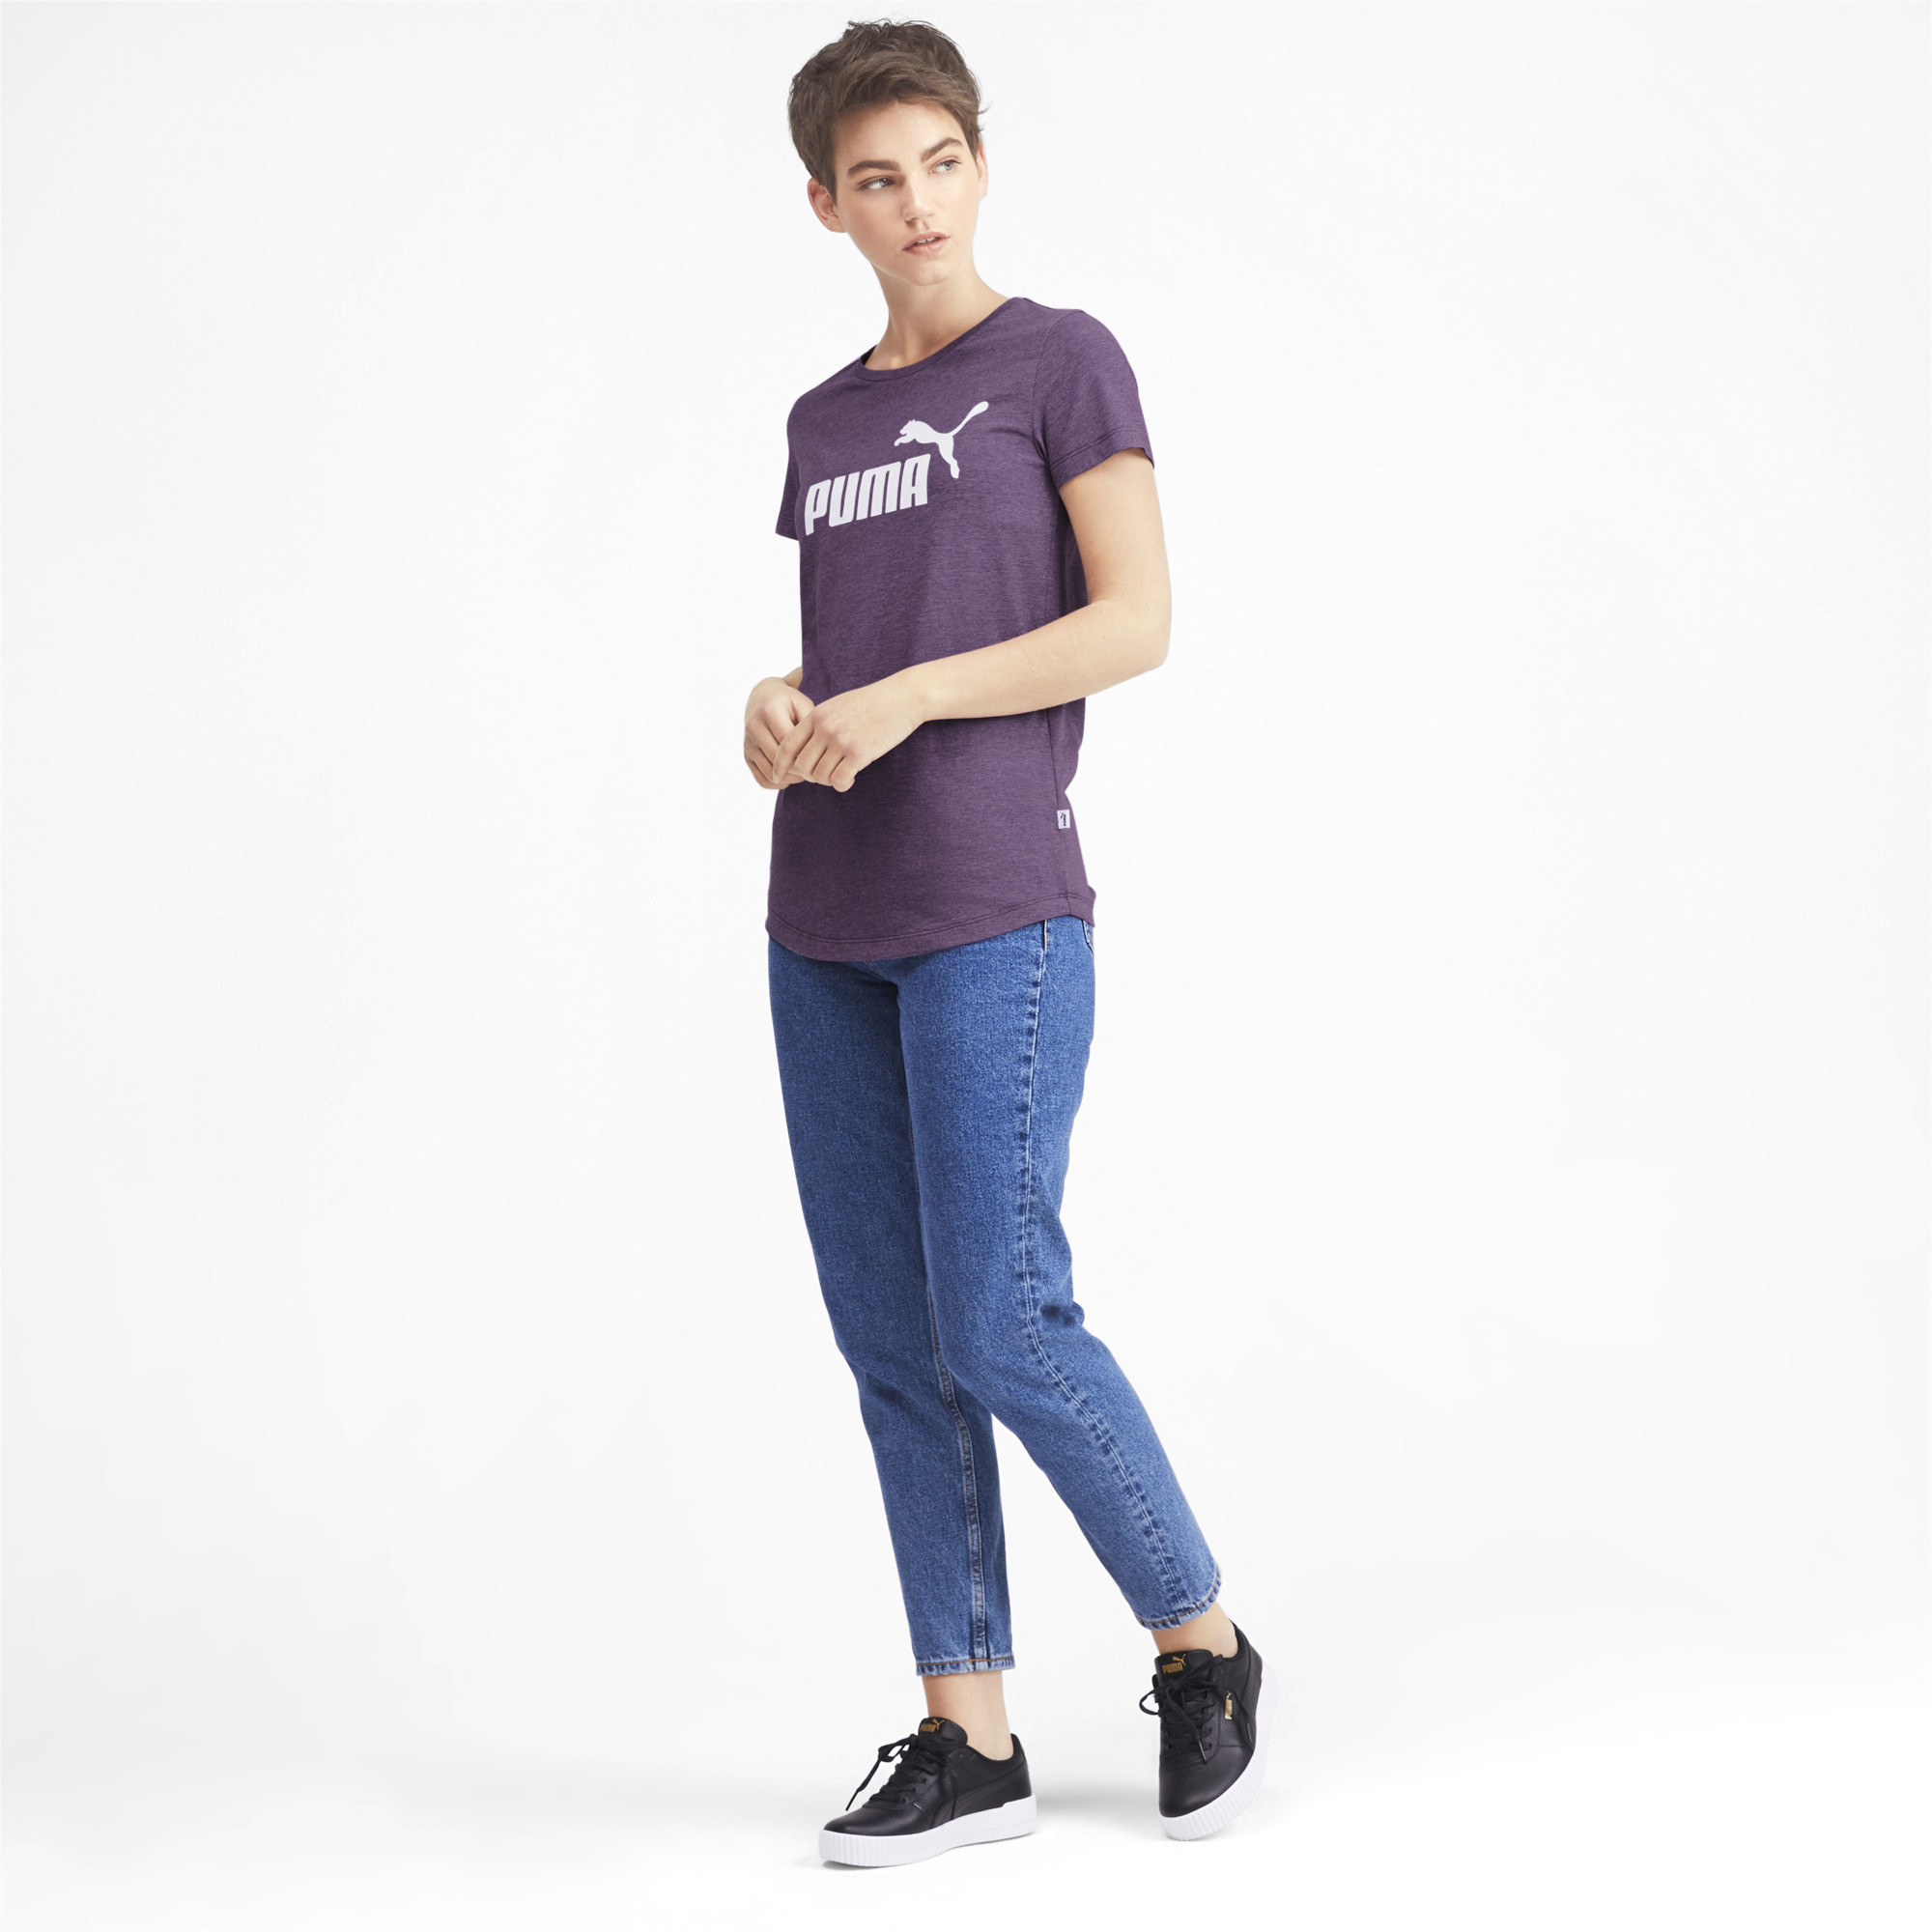 PUMA-Essentials-Women-039-s-Heather-Tee-Women-Tee-Basics thumbnail 20